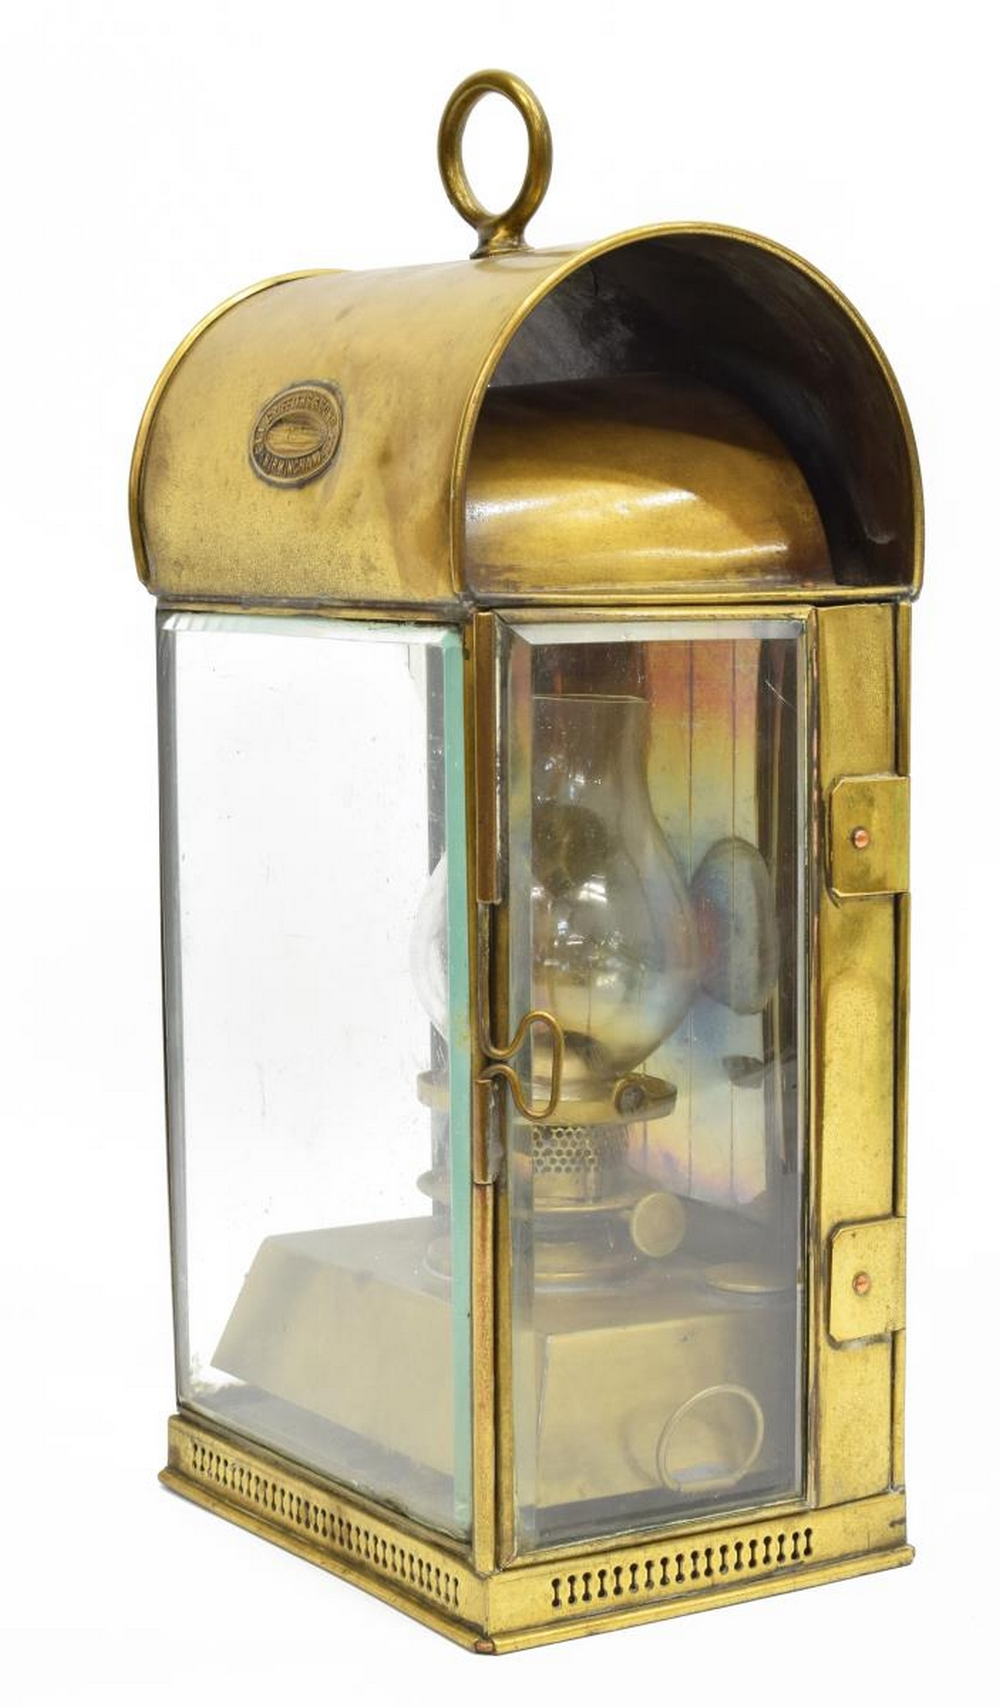 ELI GRIFFITHS & SON BRASS CARRIAGE LAMP LANTERN